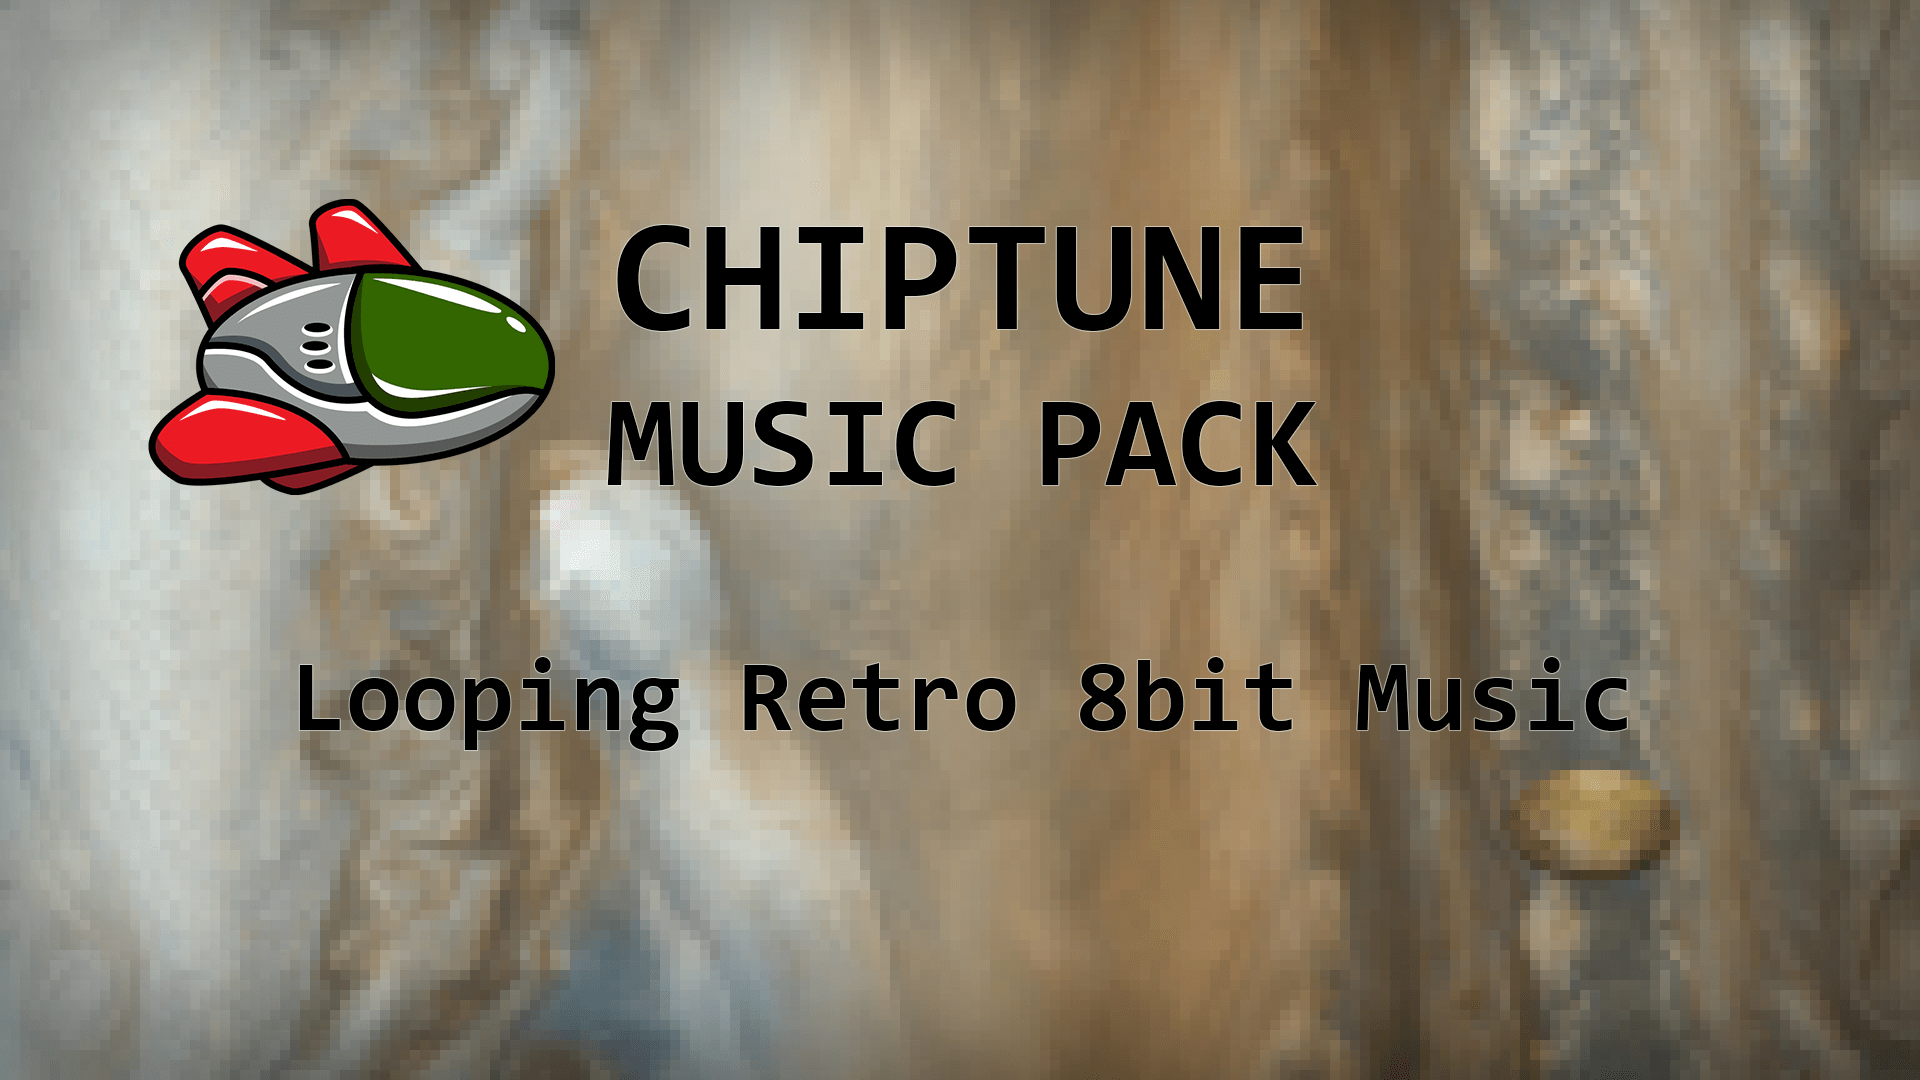 Chiptune Music Pack by Taylor Brook Music in Music - UE4